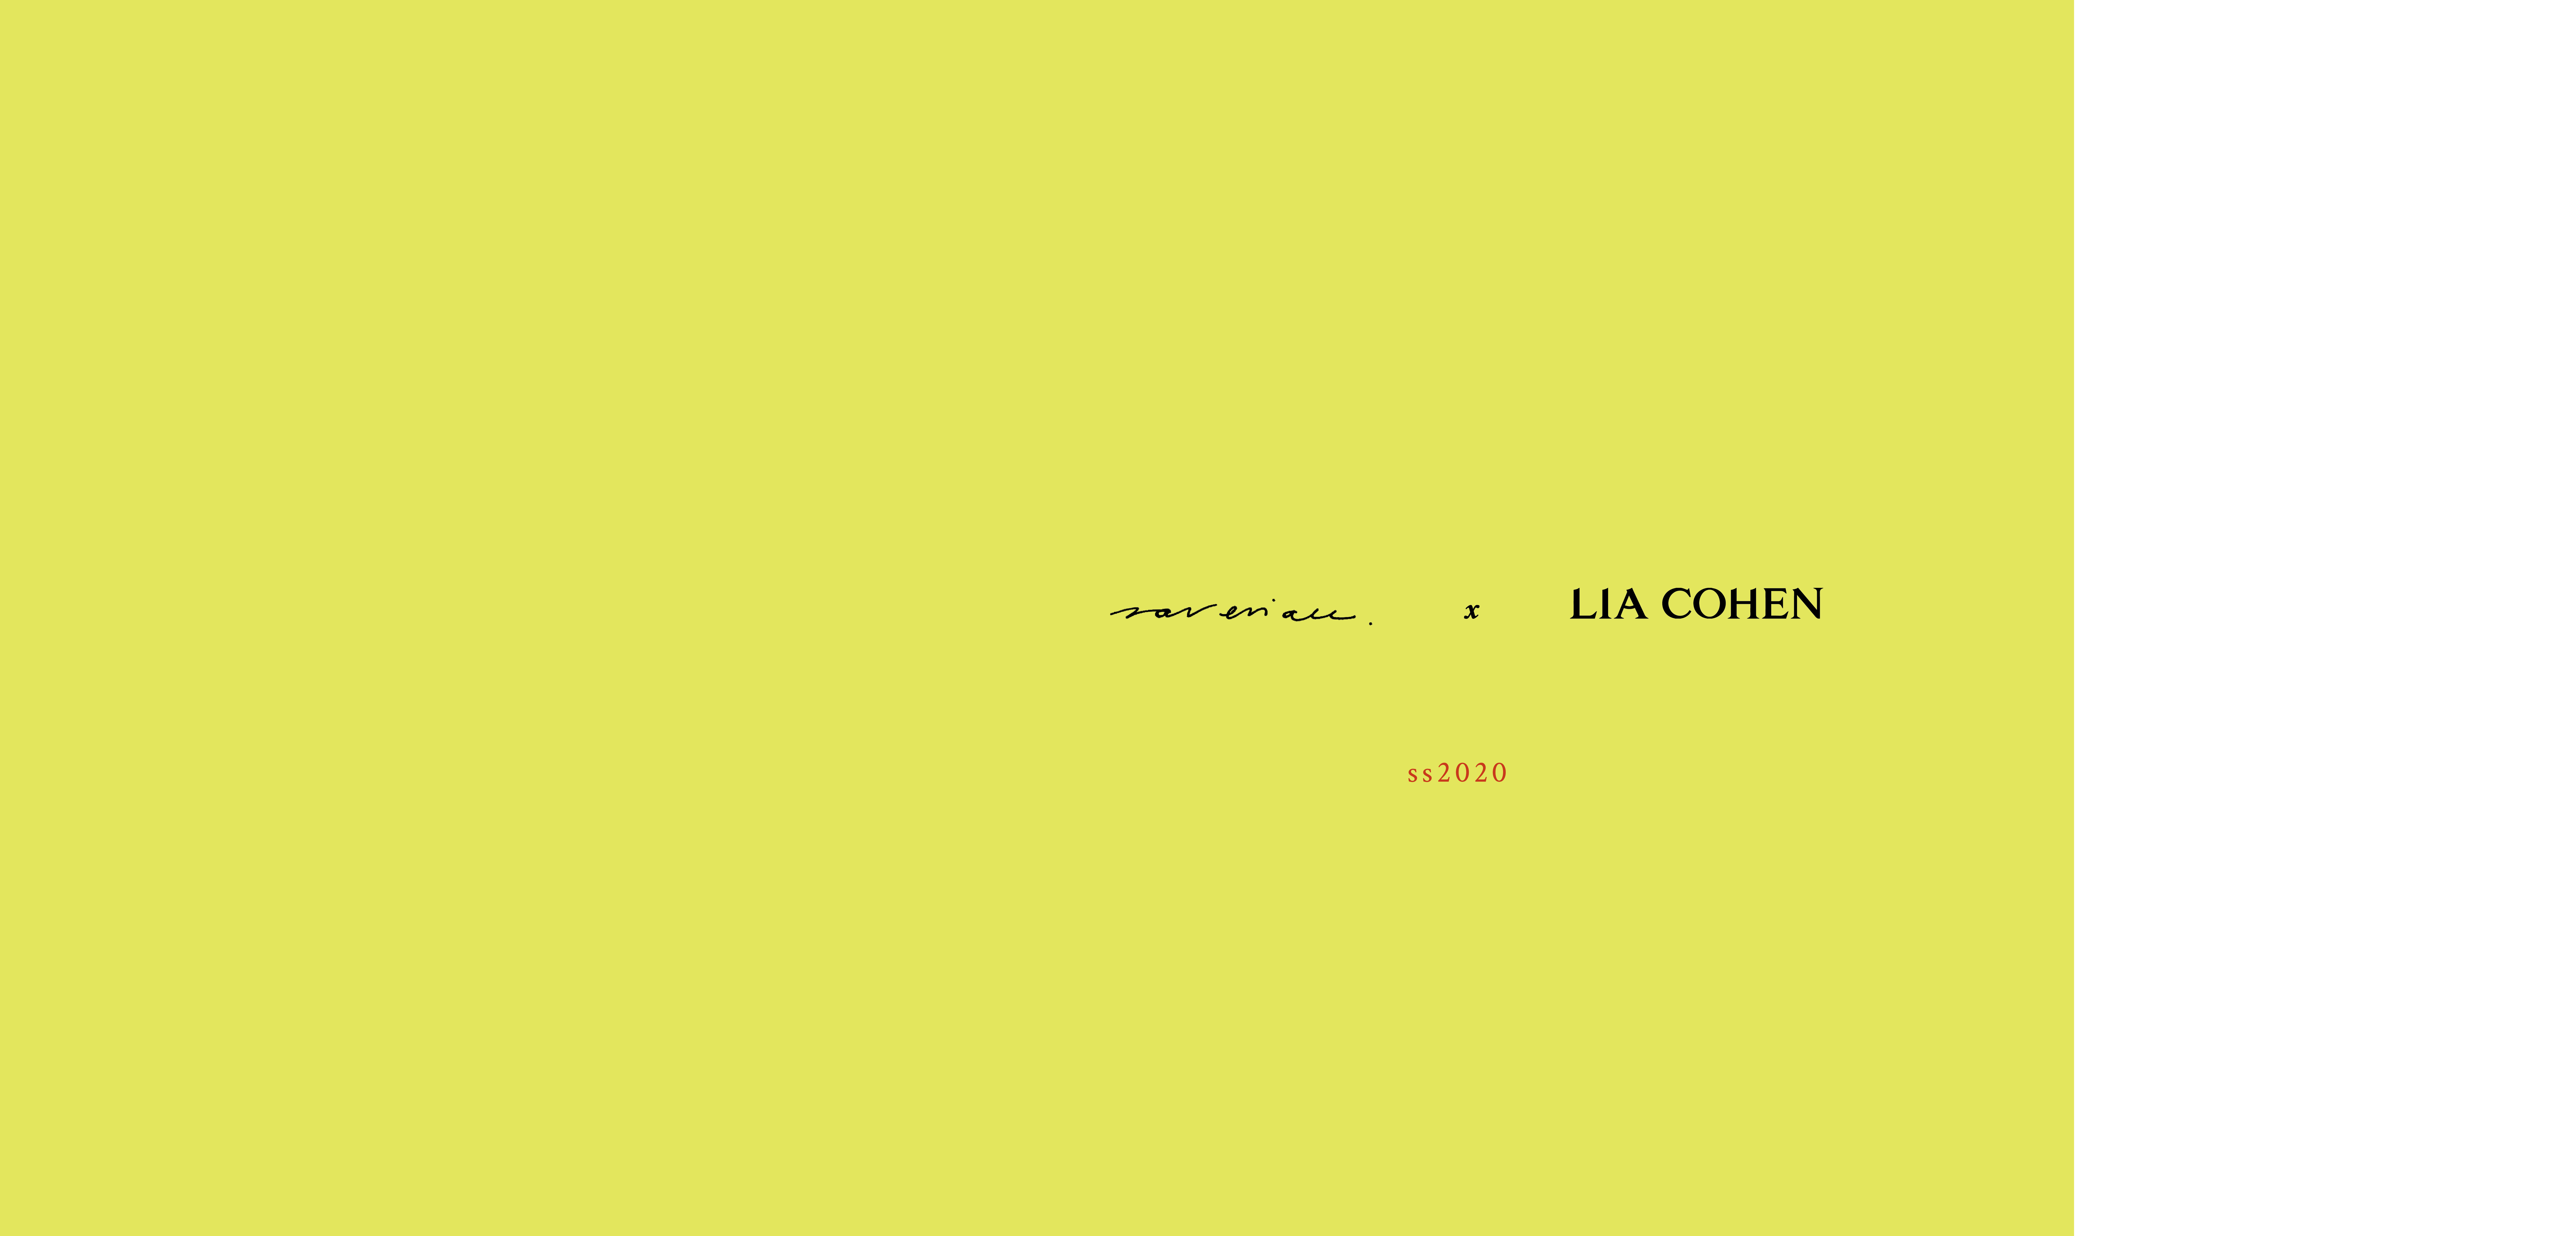 LIA COHEN - prints by saveria casaus